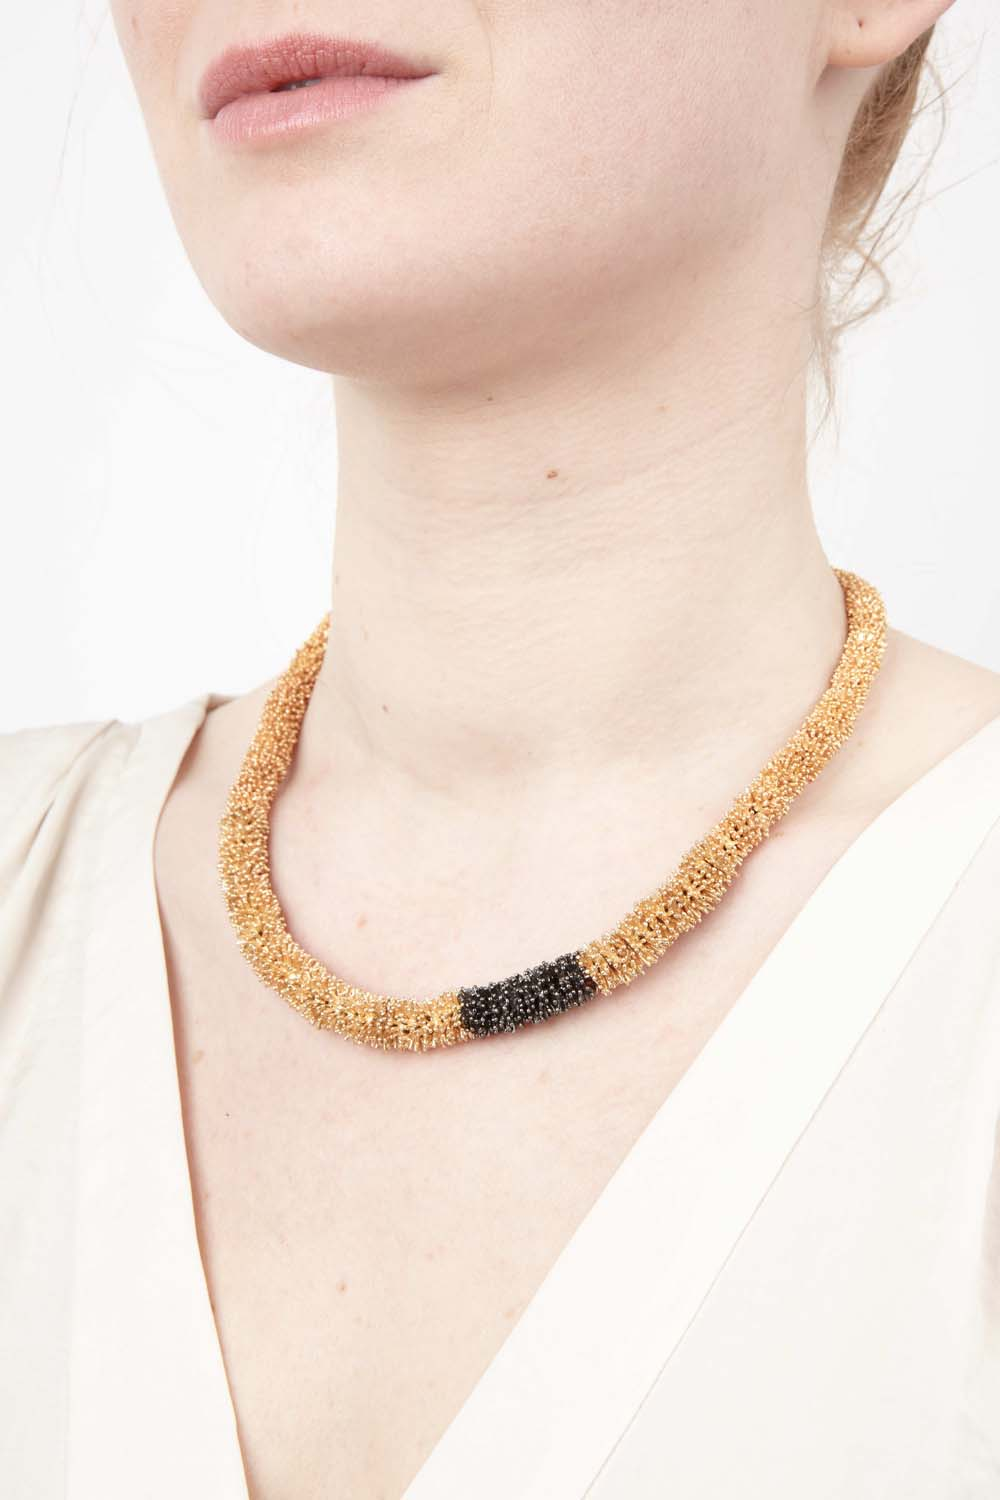 Gone To Seed Necklace - Two Tone Contour